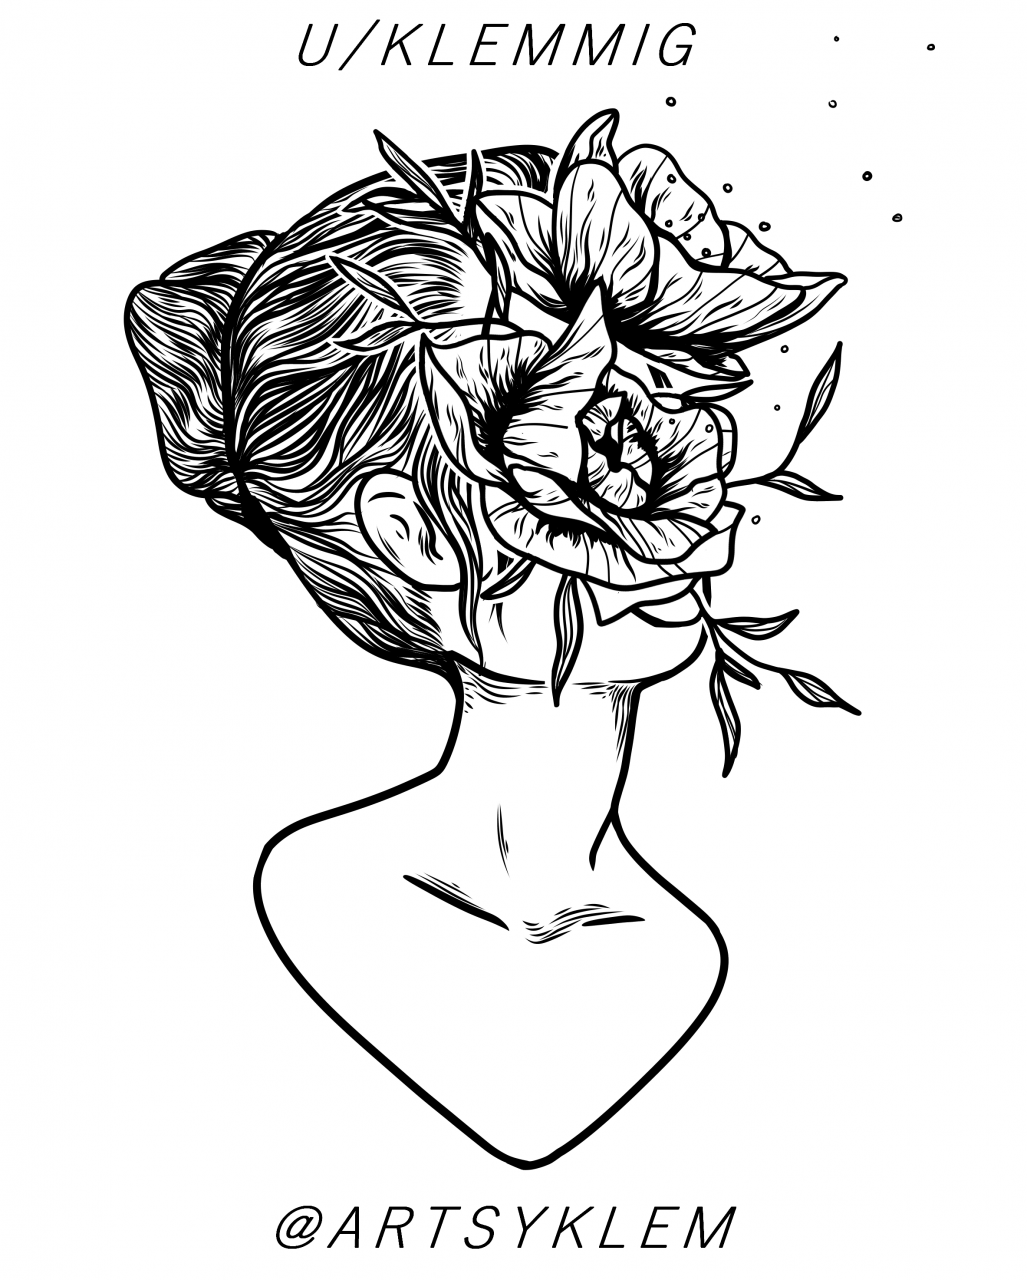 Another flowerlady. Where on the body do you think this would work the best?